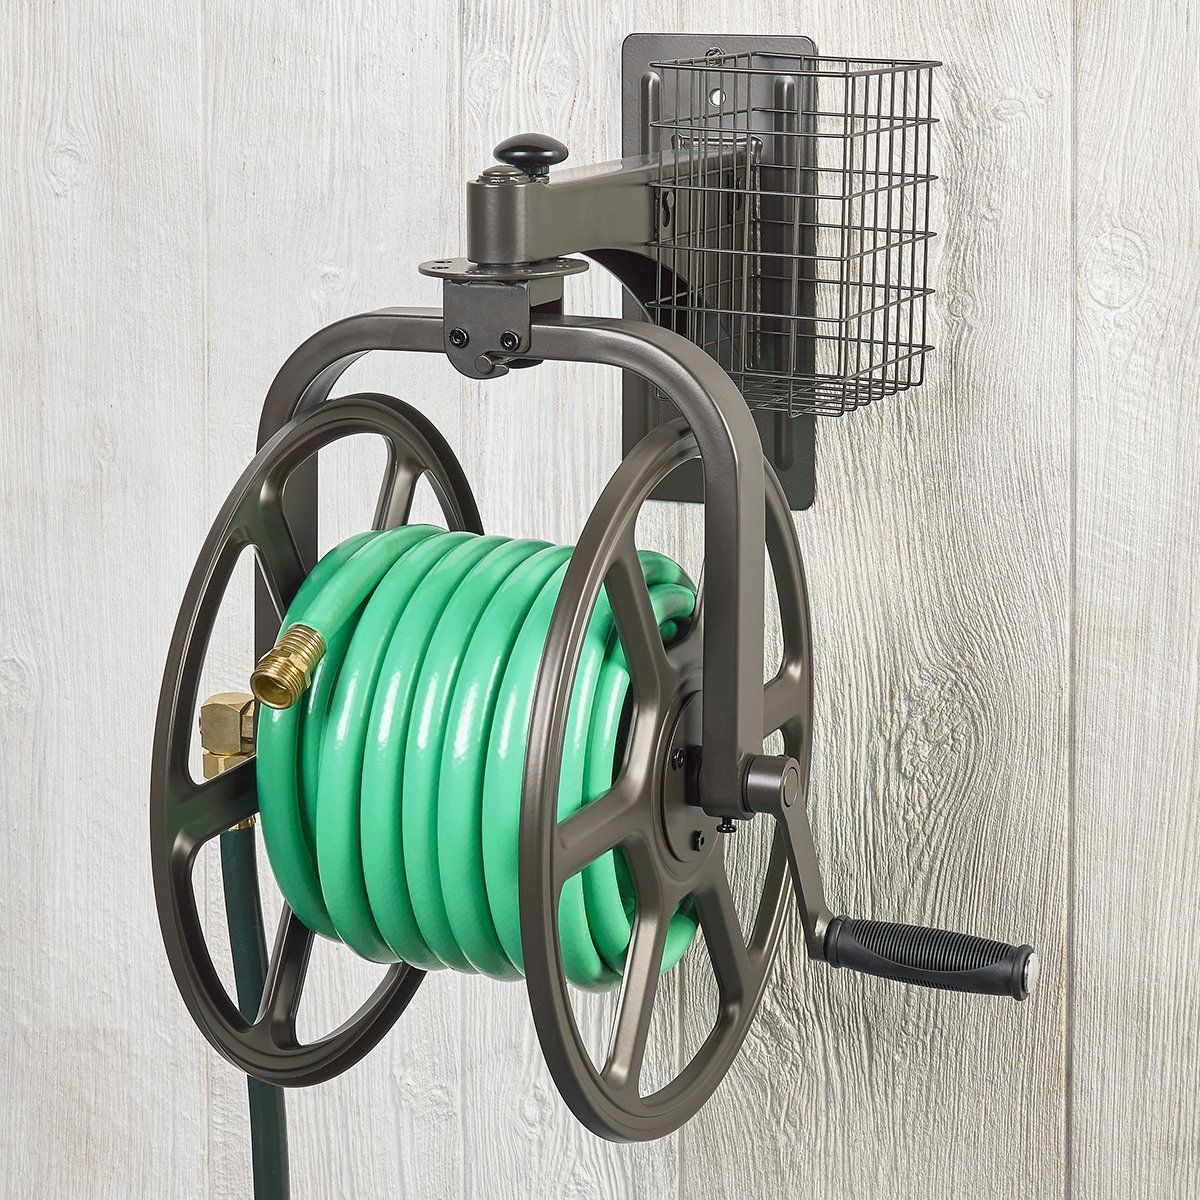 liberty garden products 712 single arm navigator multi directional garden hose reel holds 125 - Liberty Garden Hose Reel